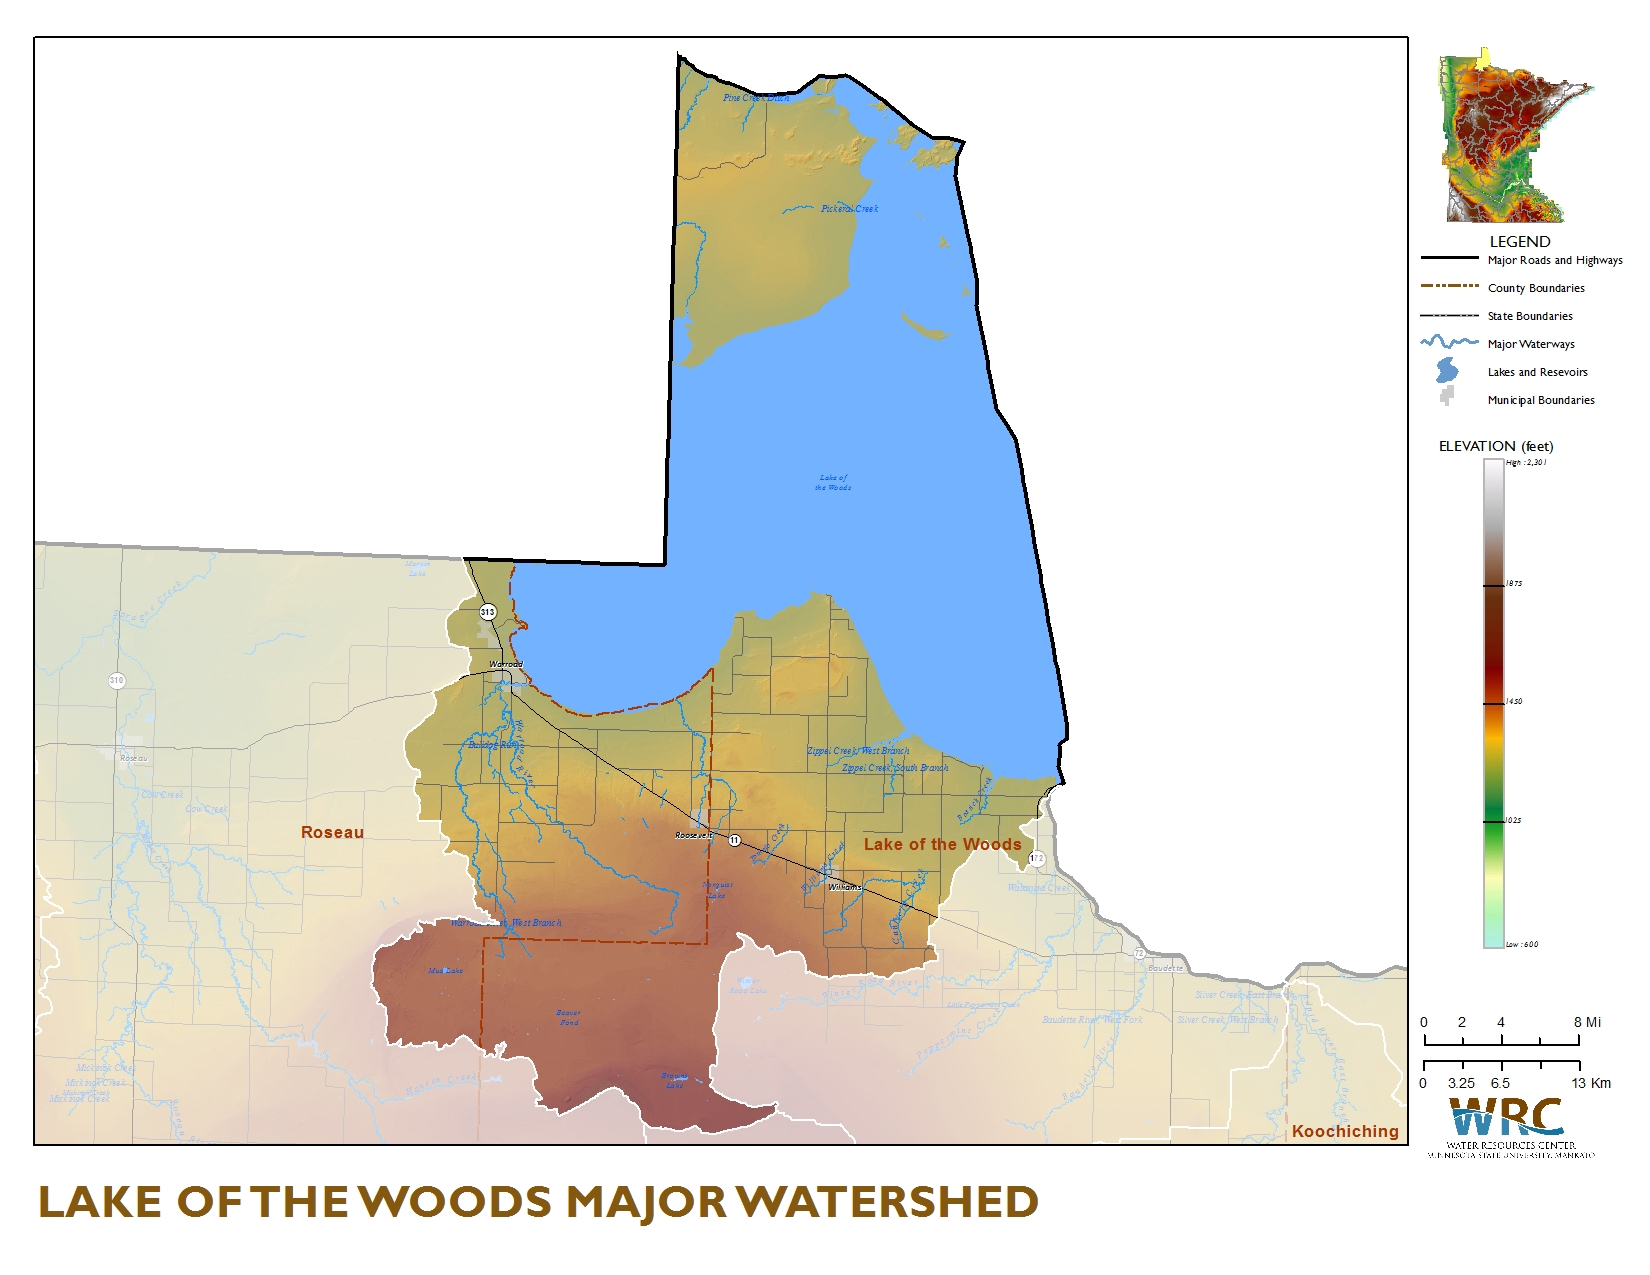 Lake of the Woods Watershed | Minnesota Nutrient Data Portal